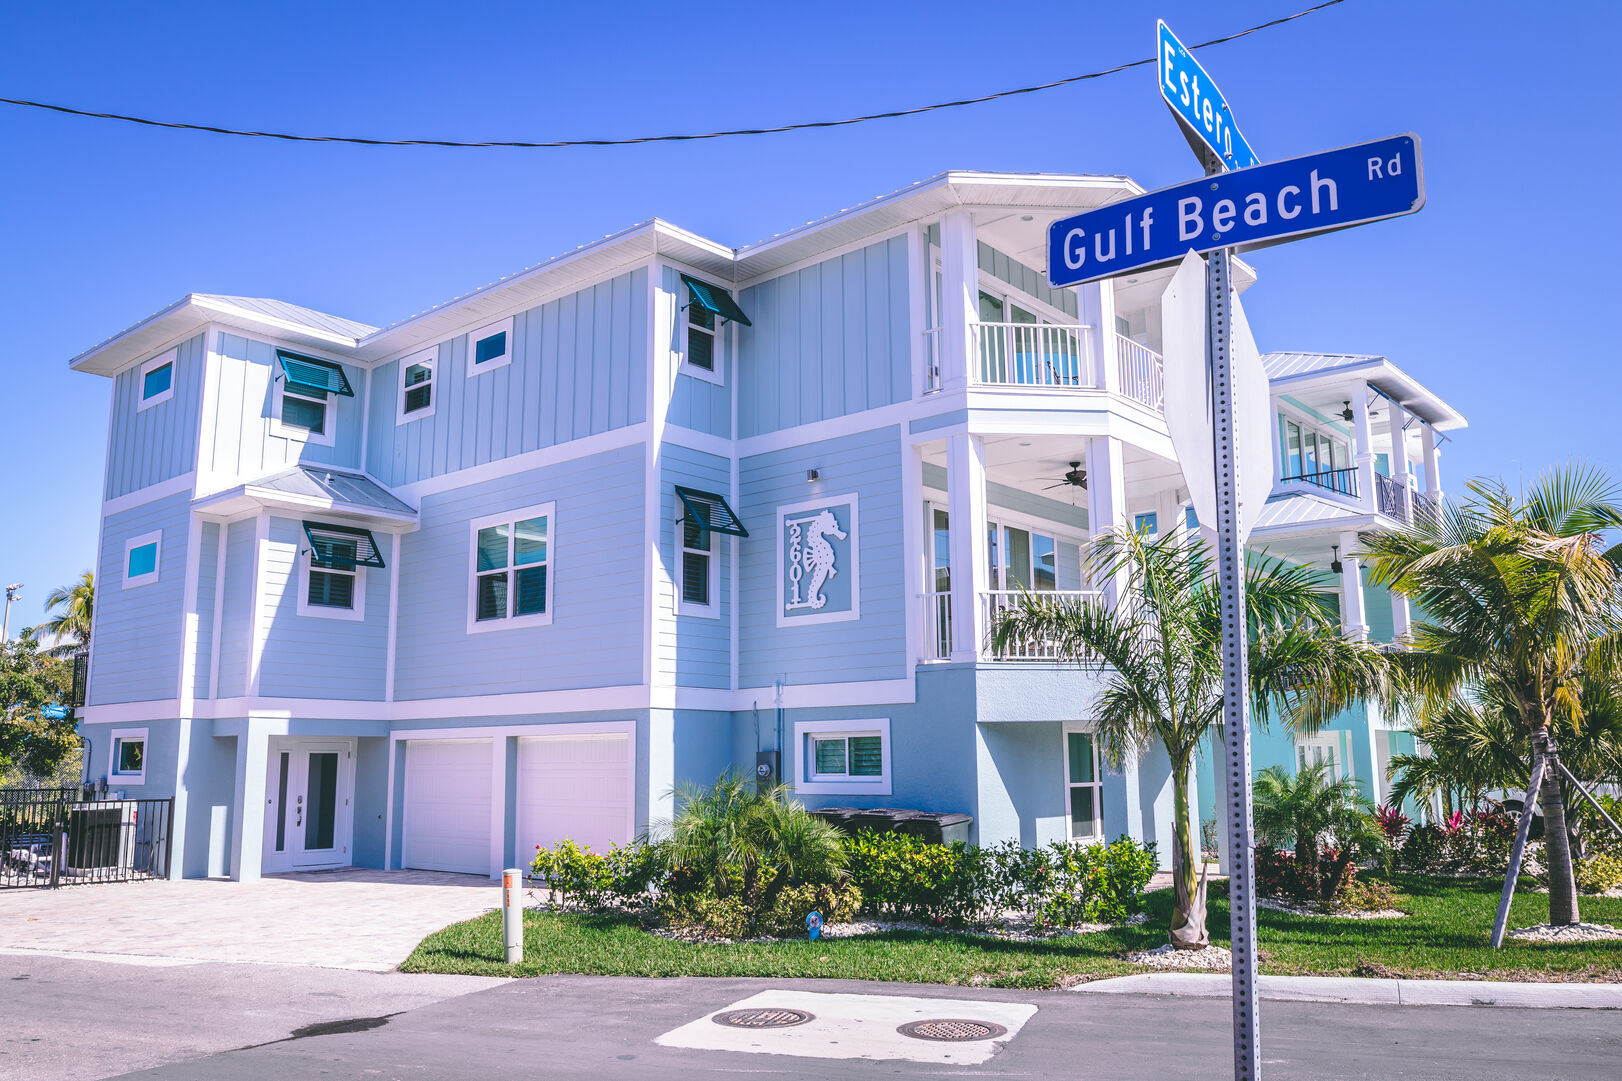 Street view of this vacation rental Fort Myers Beach Florida